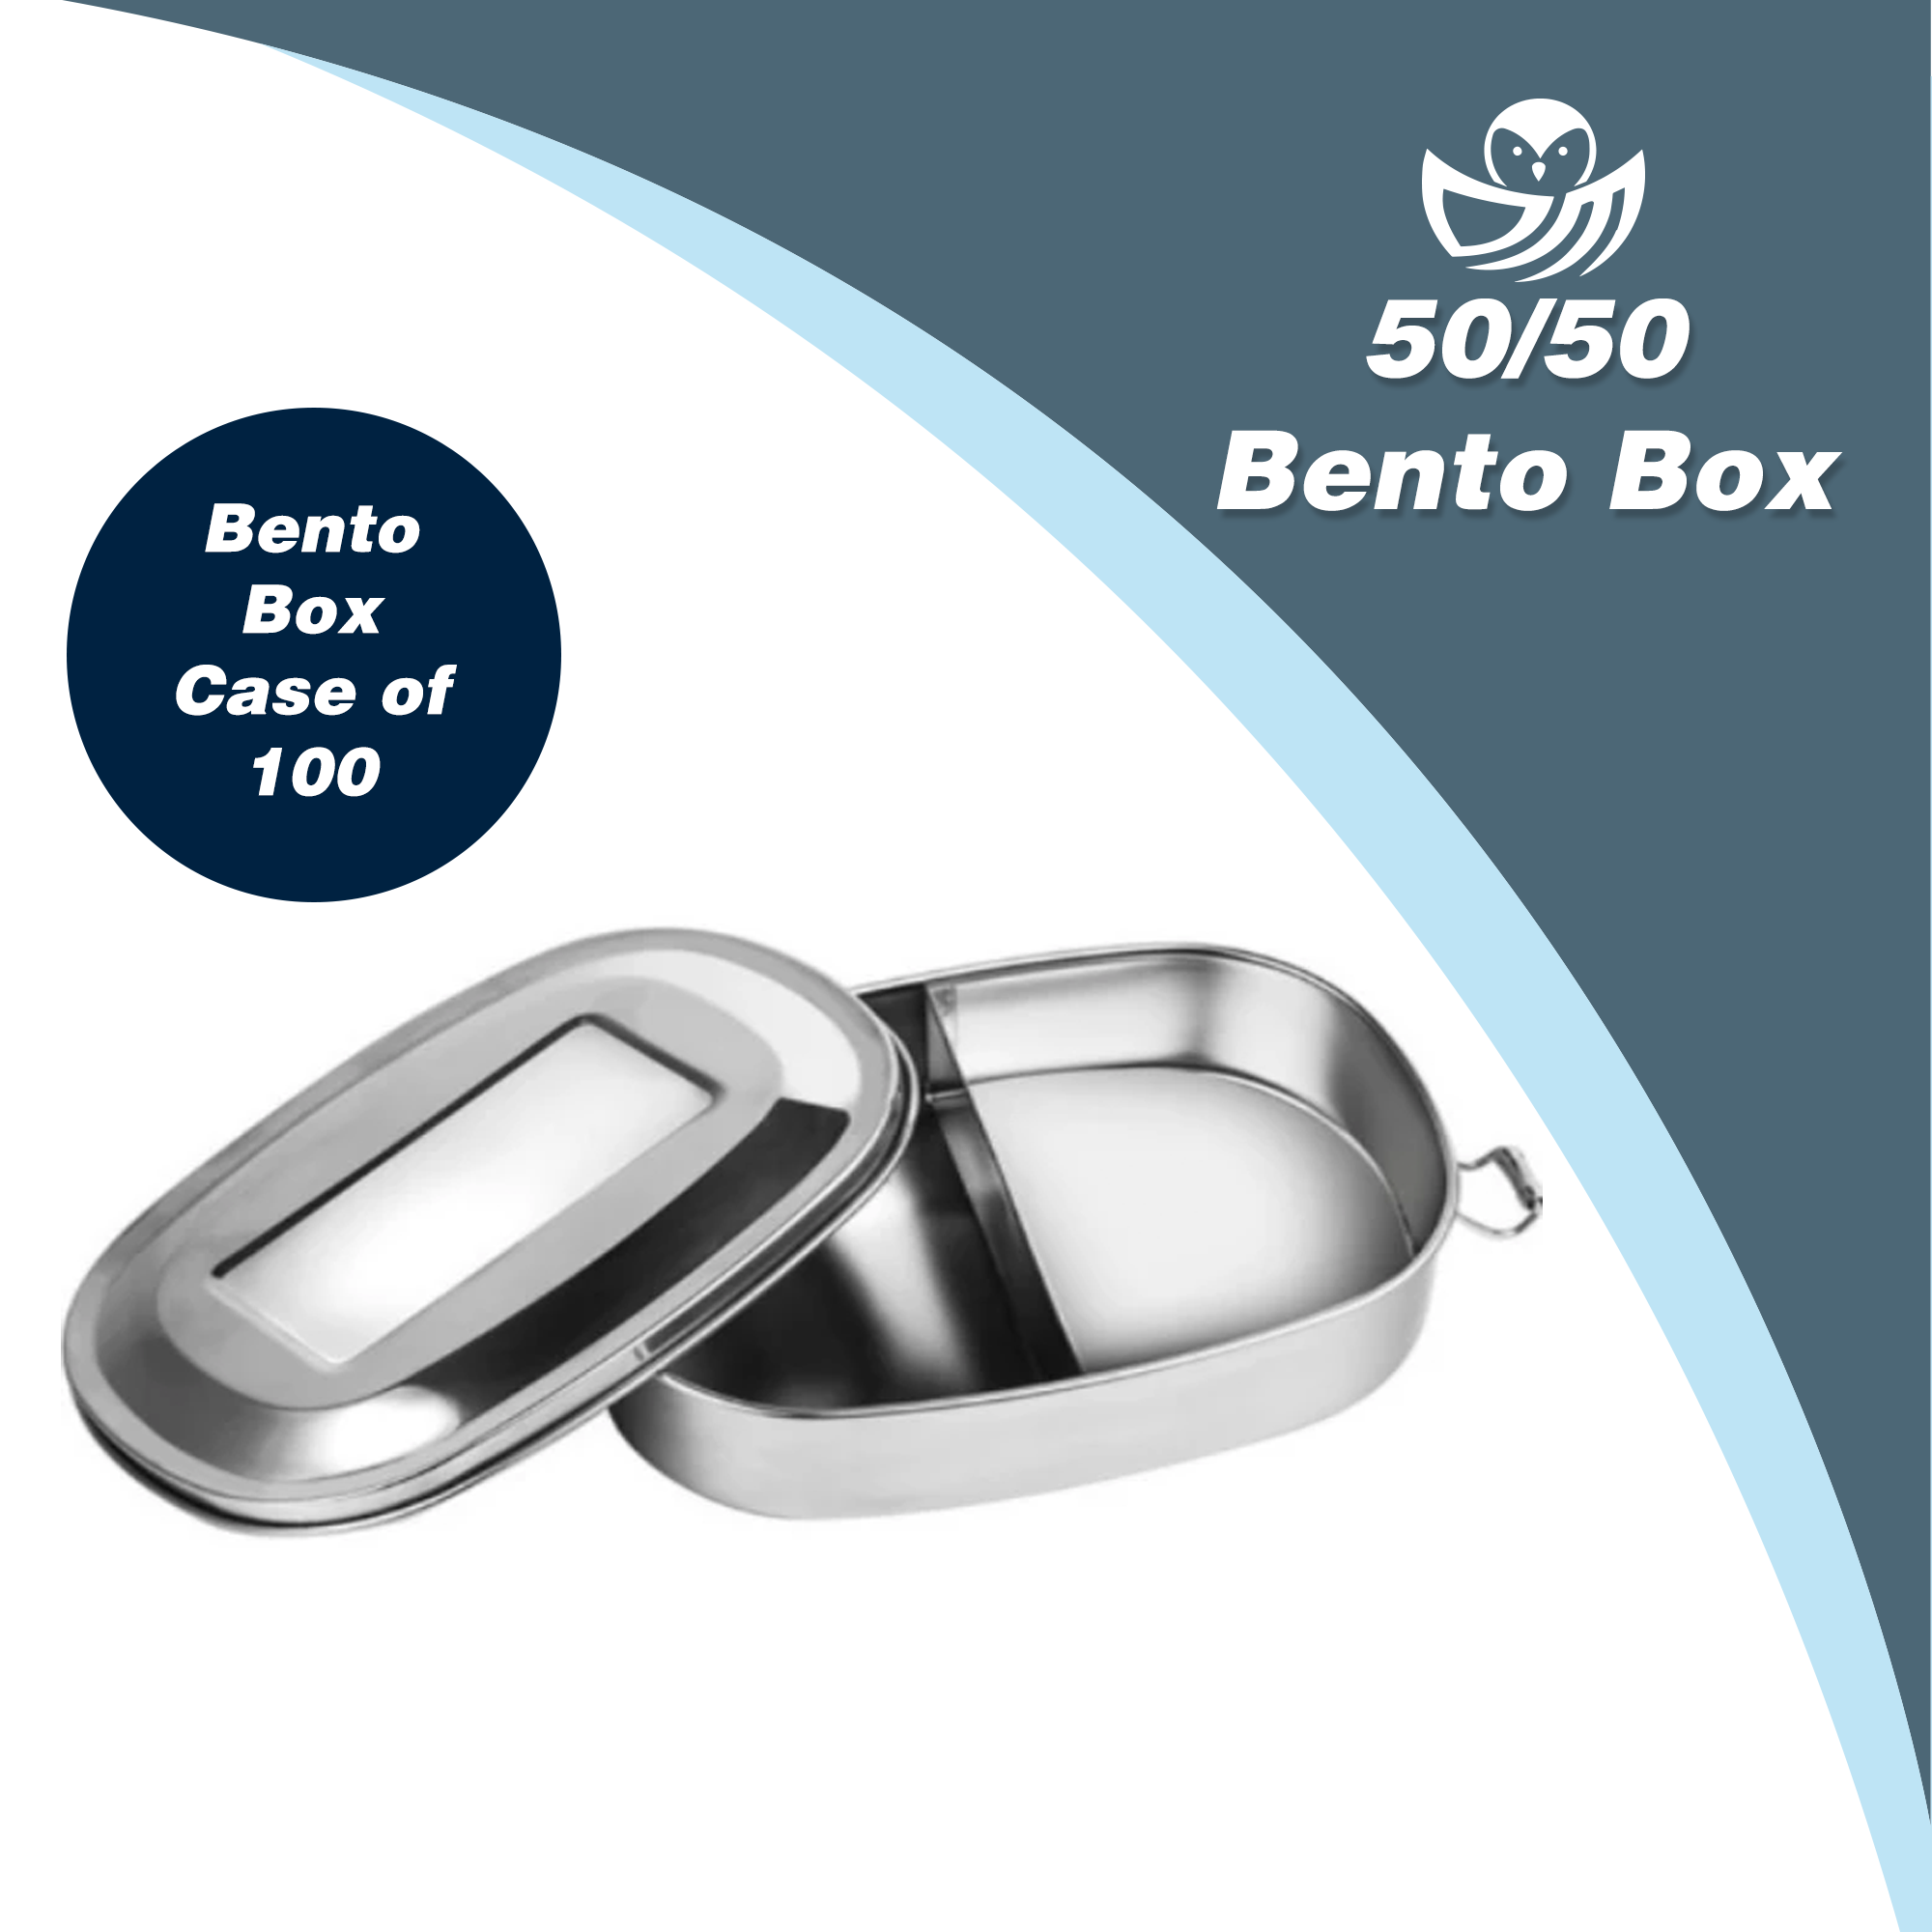 Bento 50/50 - Wholesale case of 100